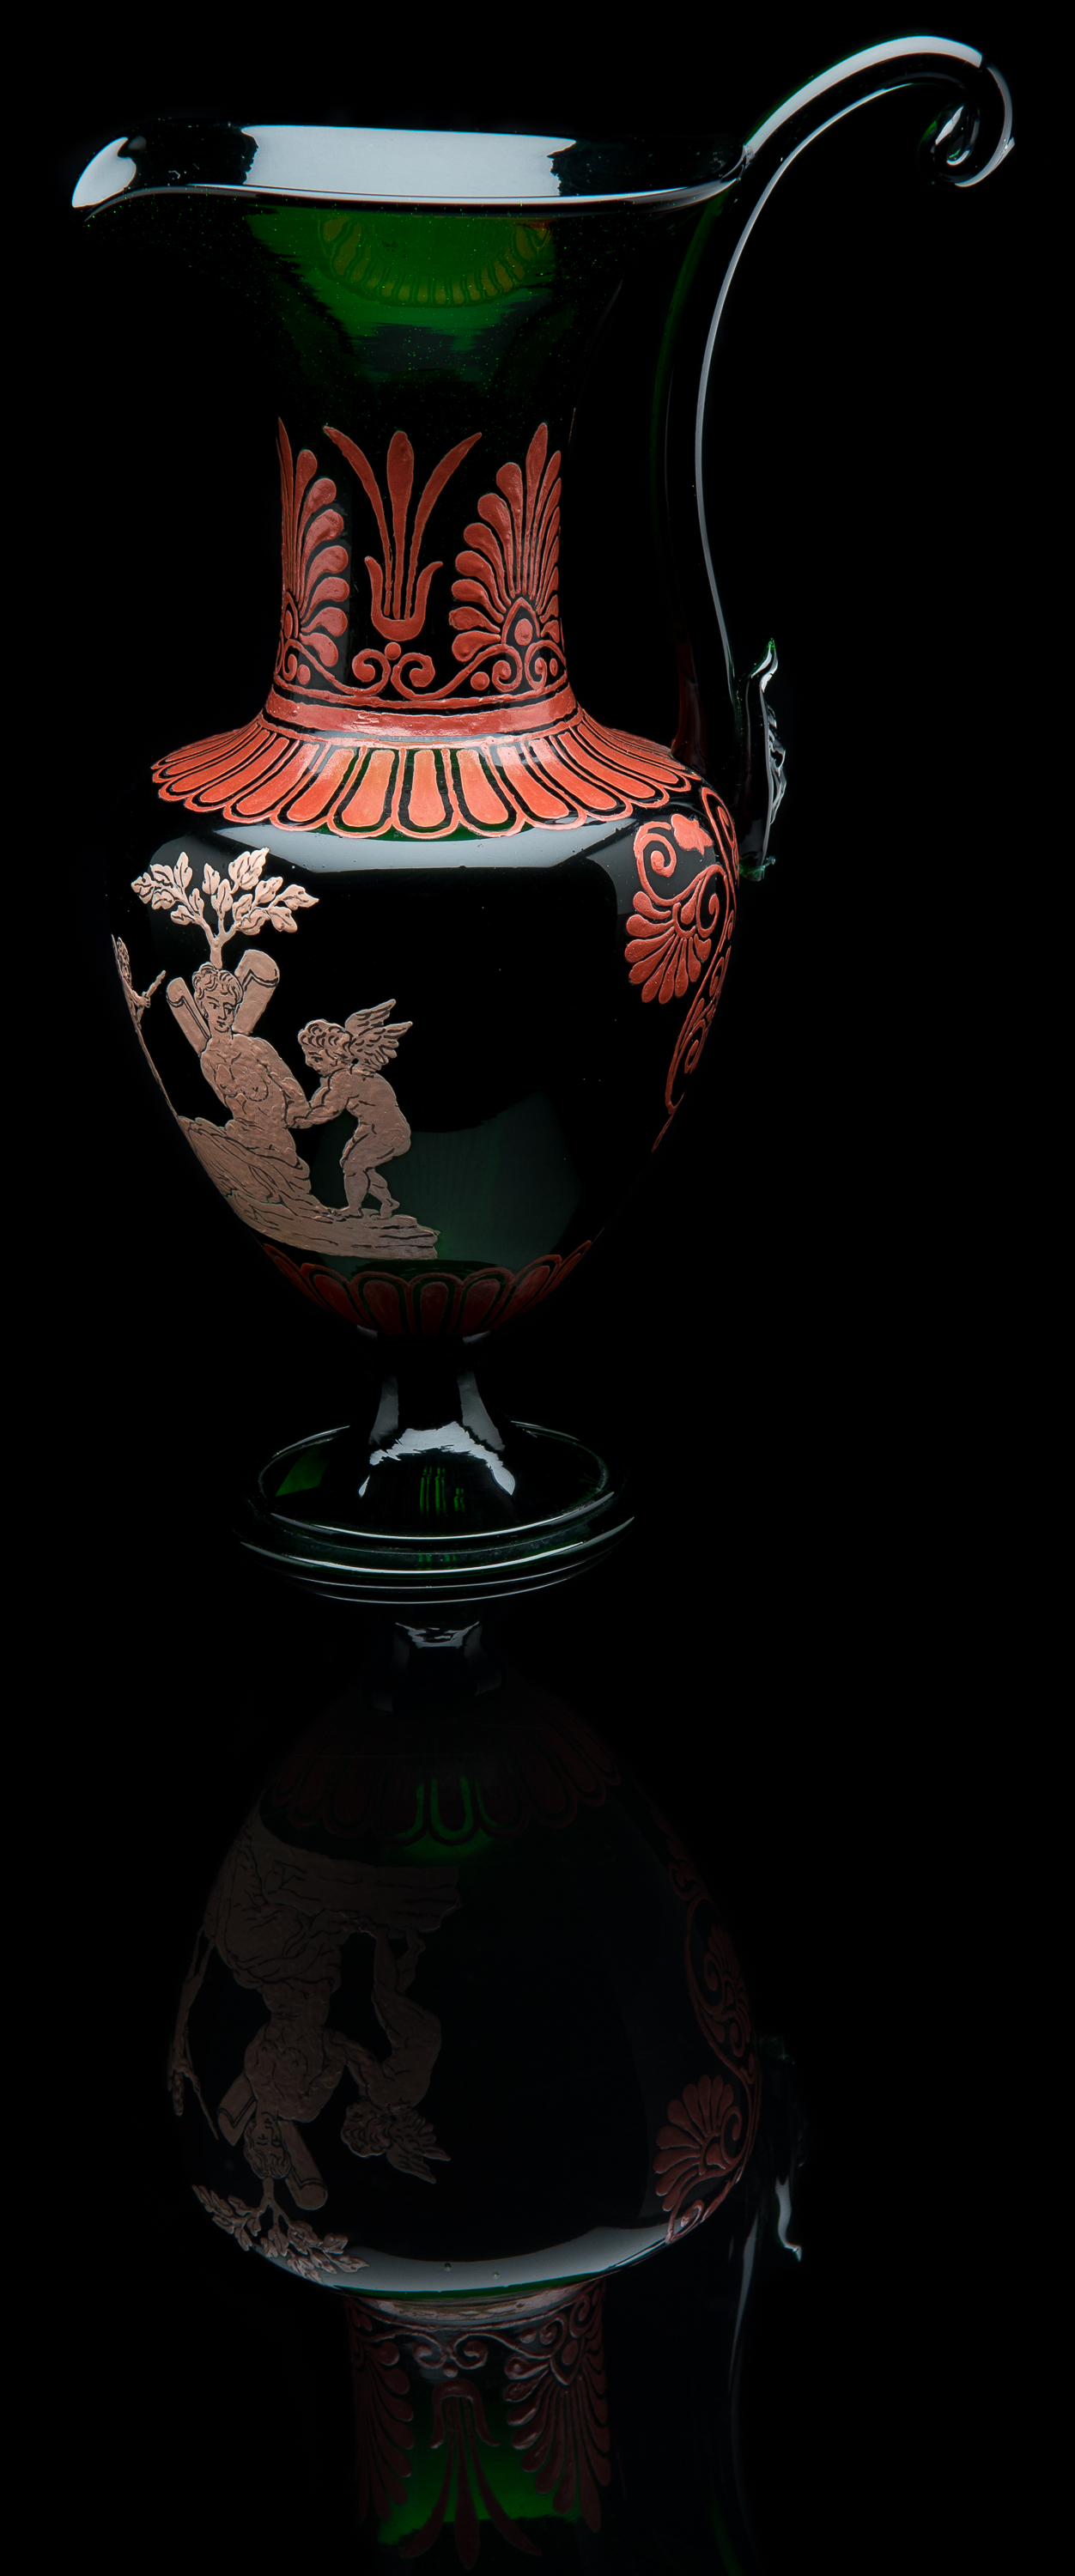 Salviati and Company,  Green Ewer with Roman Style Enamel Decoration  (glass, 8.75 inches), VV.1017